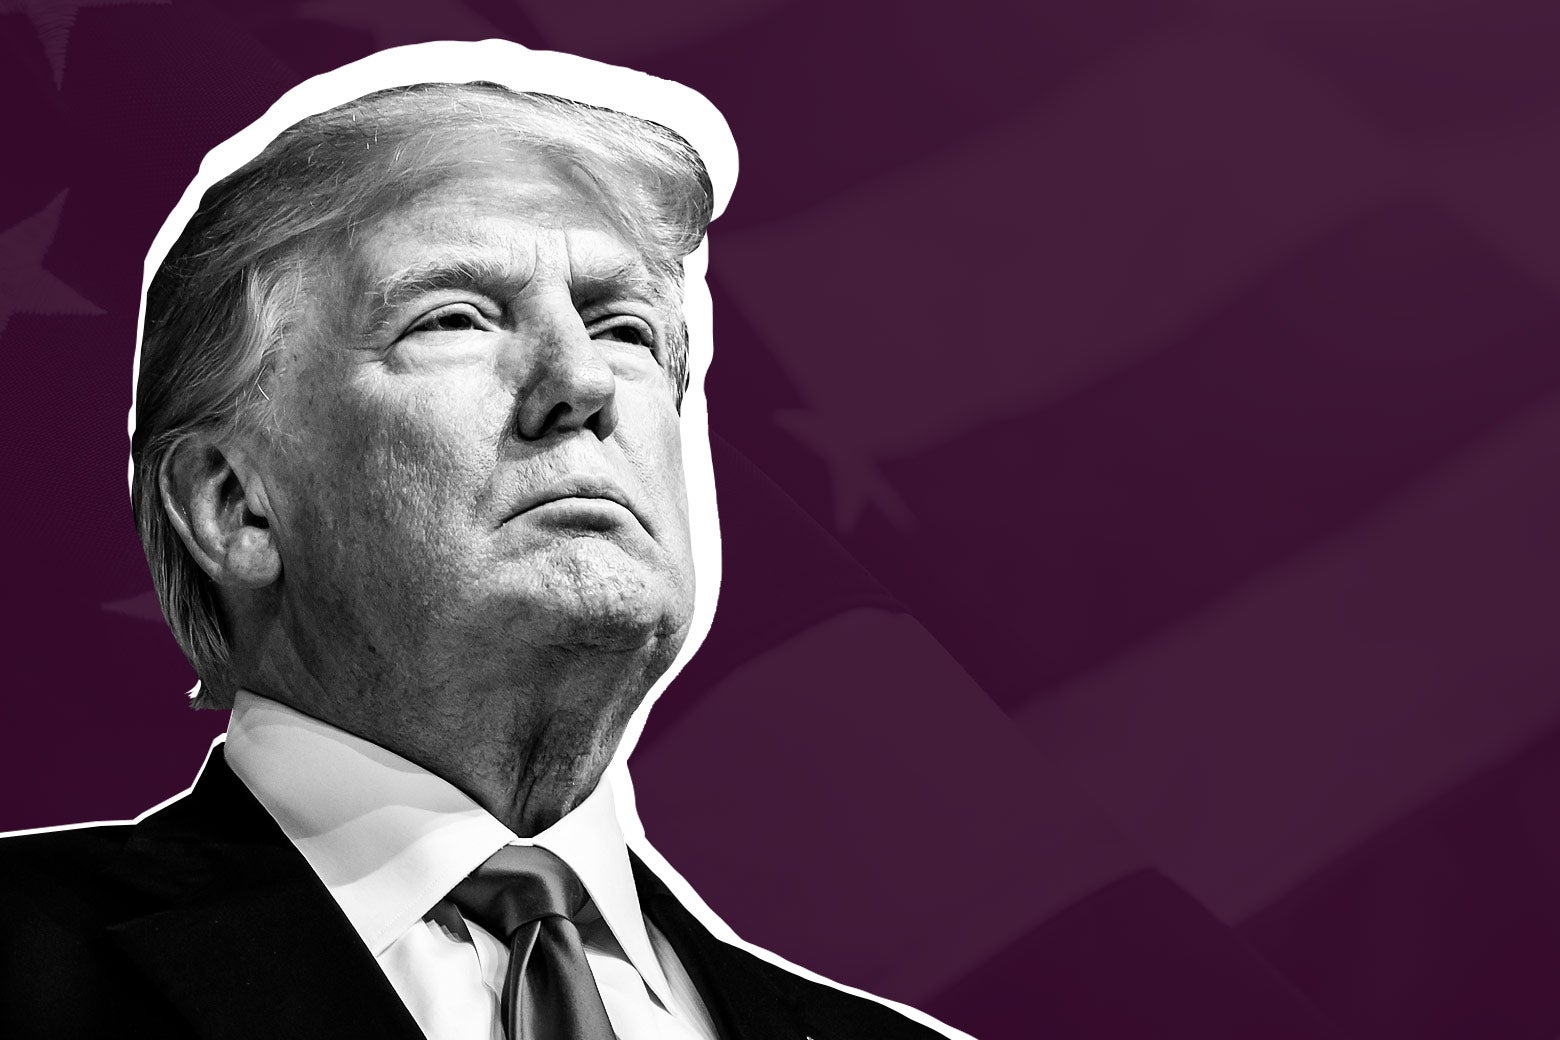 President Donald Trump against a purple background.